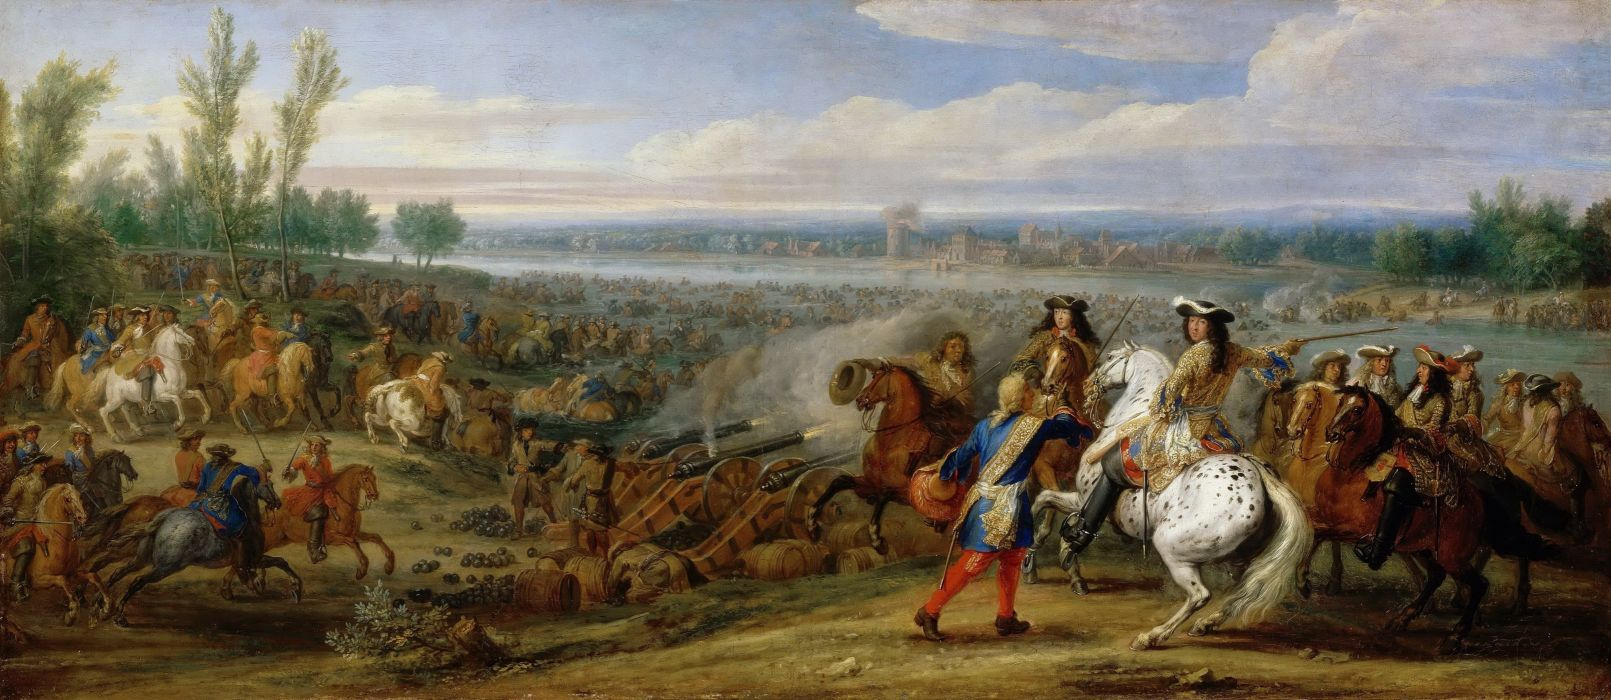 Melun Crossing the Rhine by the French military painting artwork wallpaper